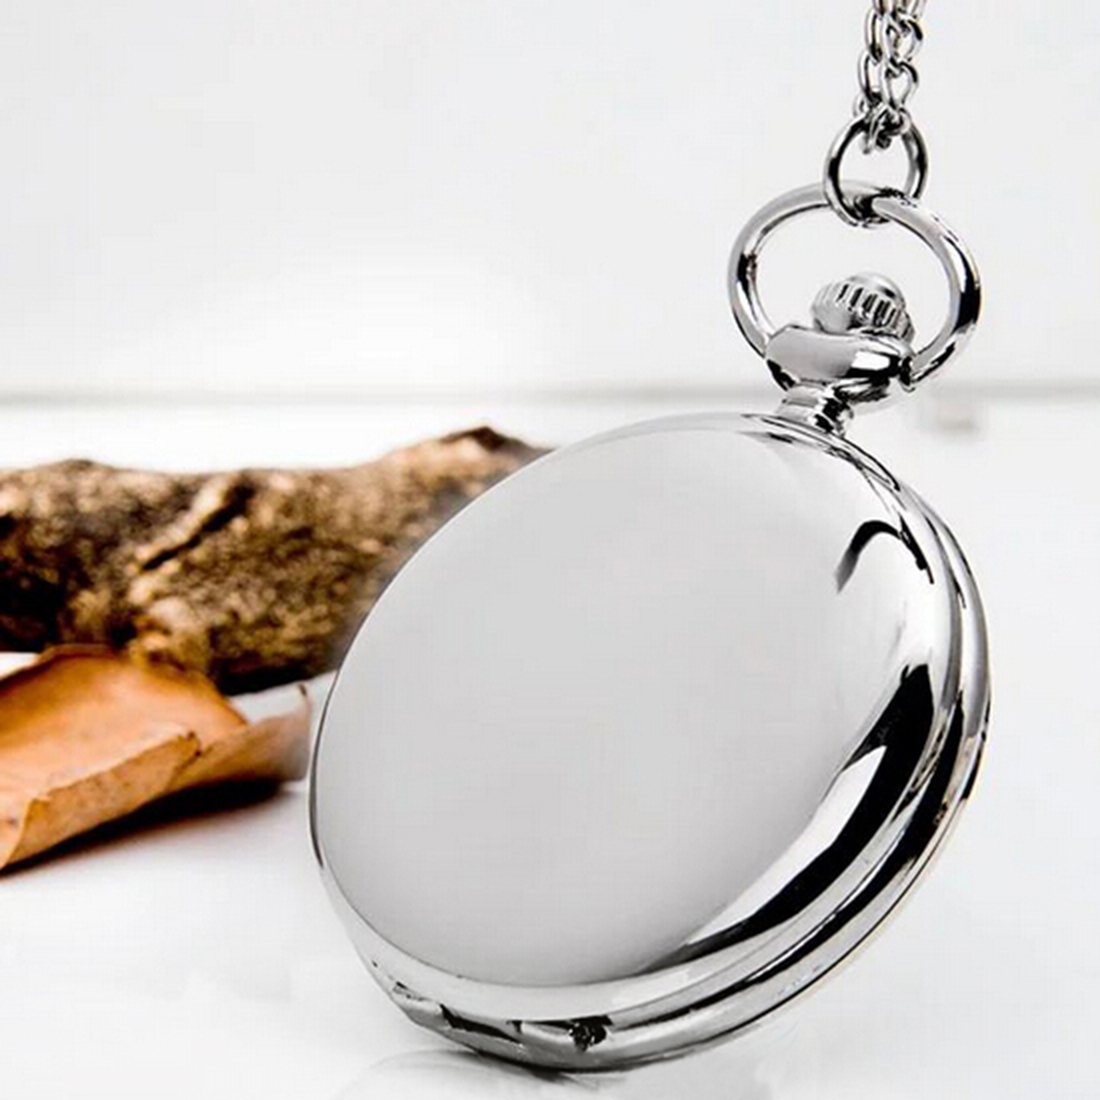 2018 Retro Classical 4.5cm Size Silver Polish Quartz Men Pocket Watch Steampunk Necklace Gift Quartz Watch Relogio